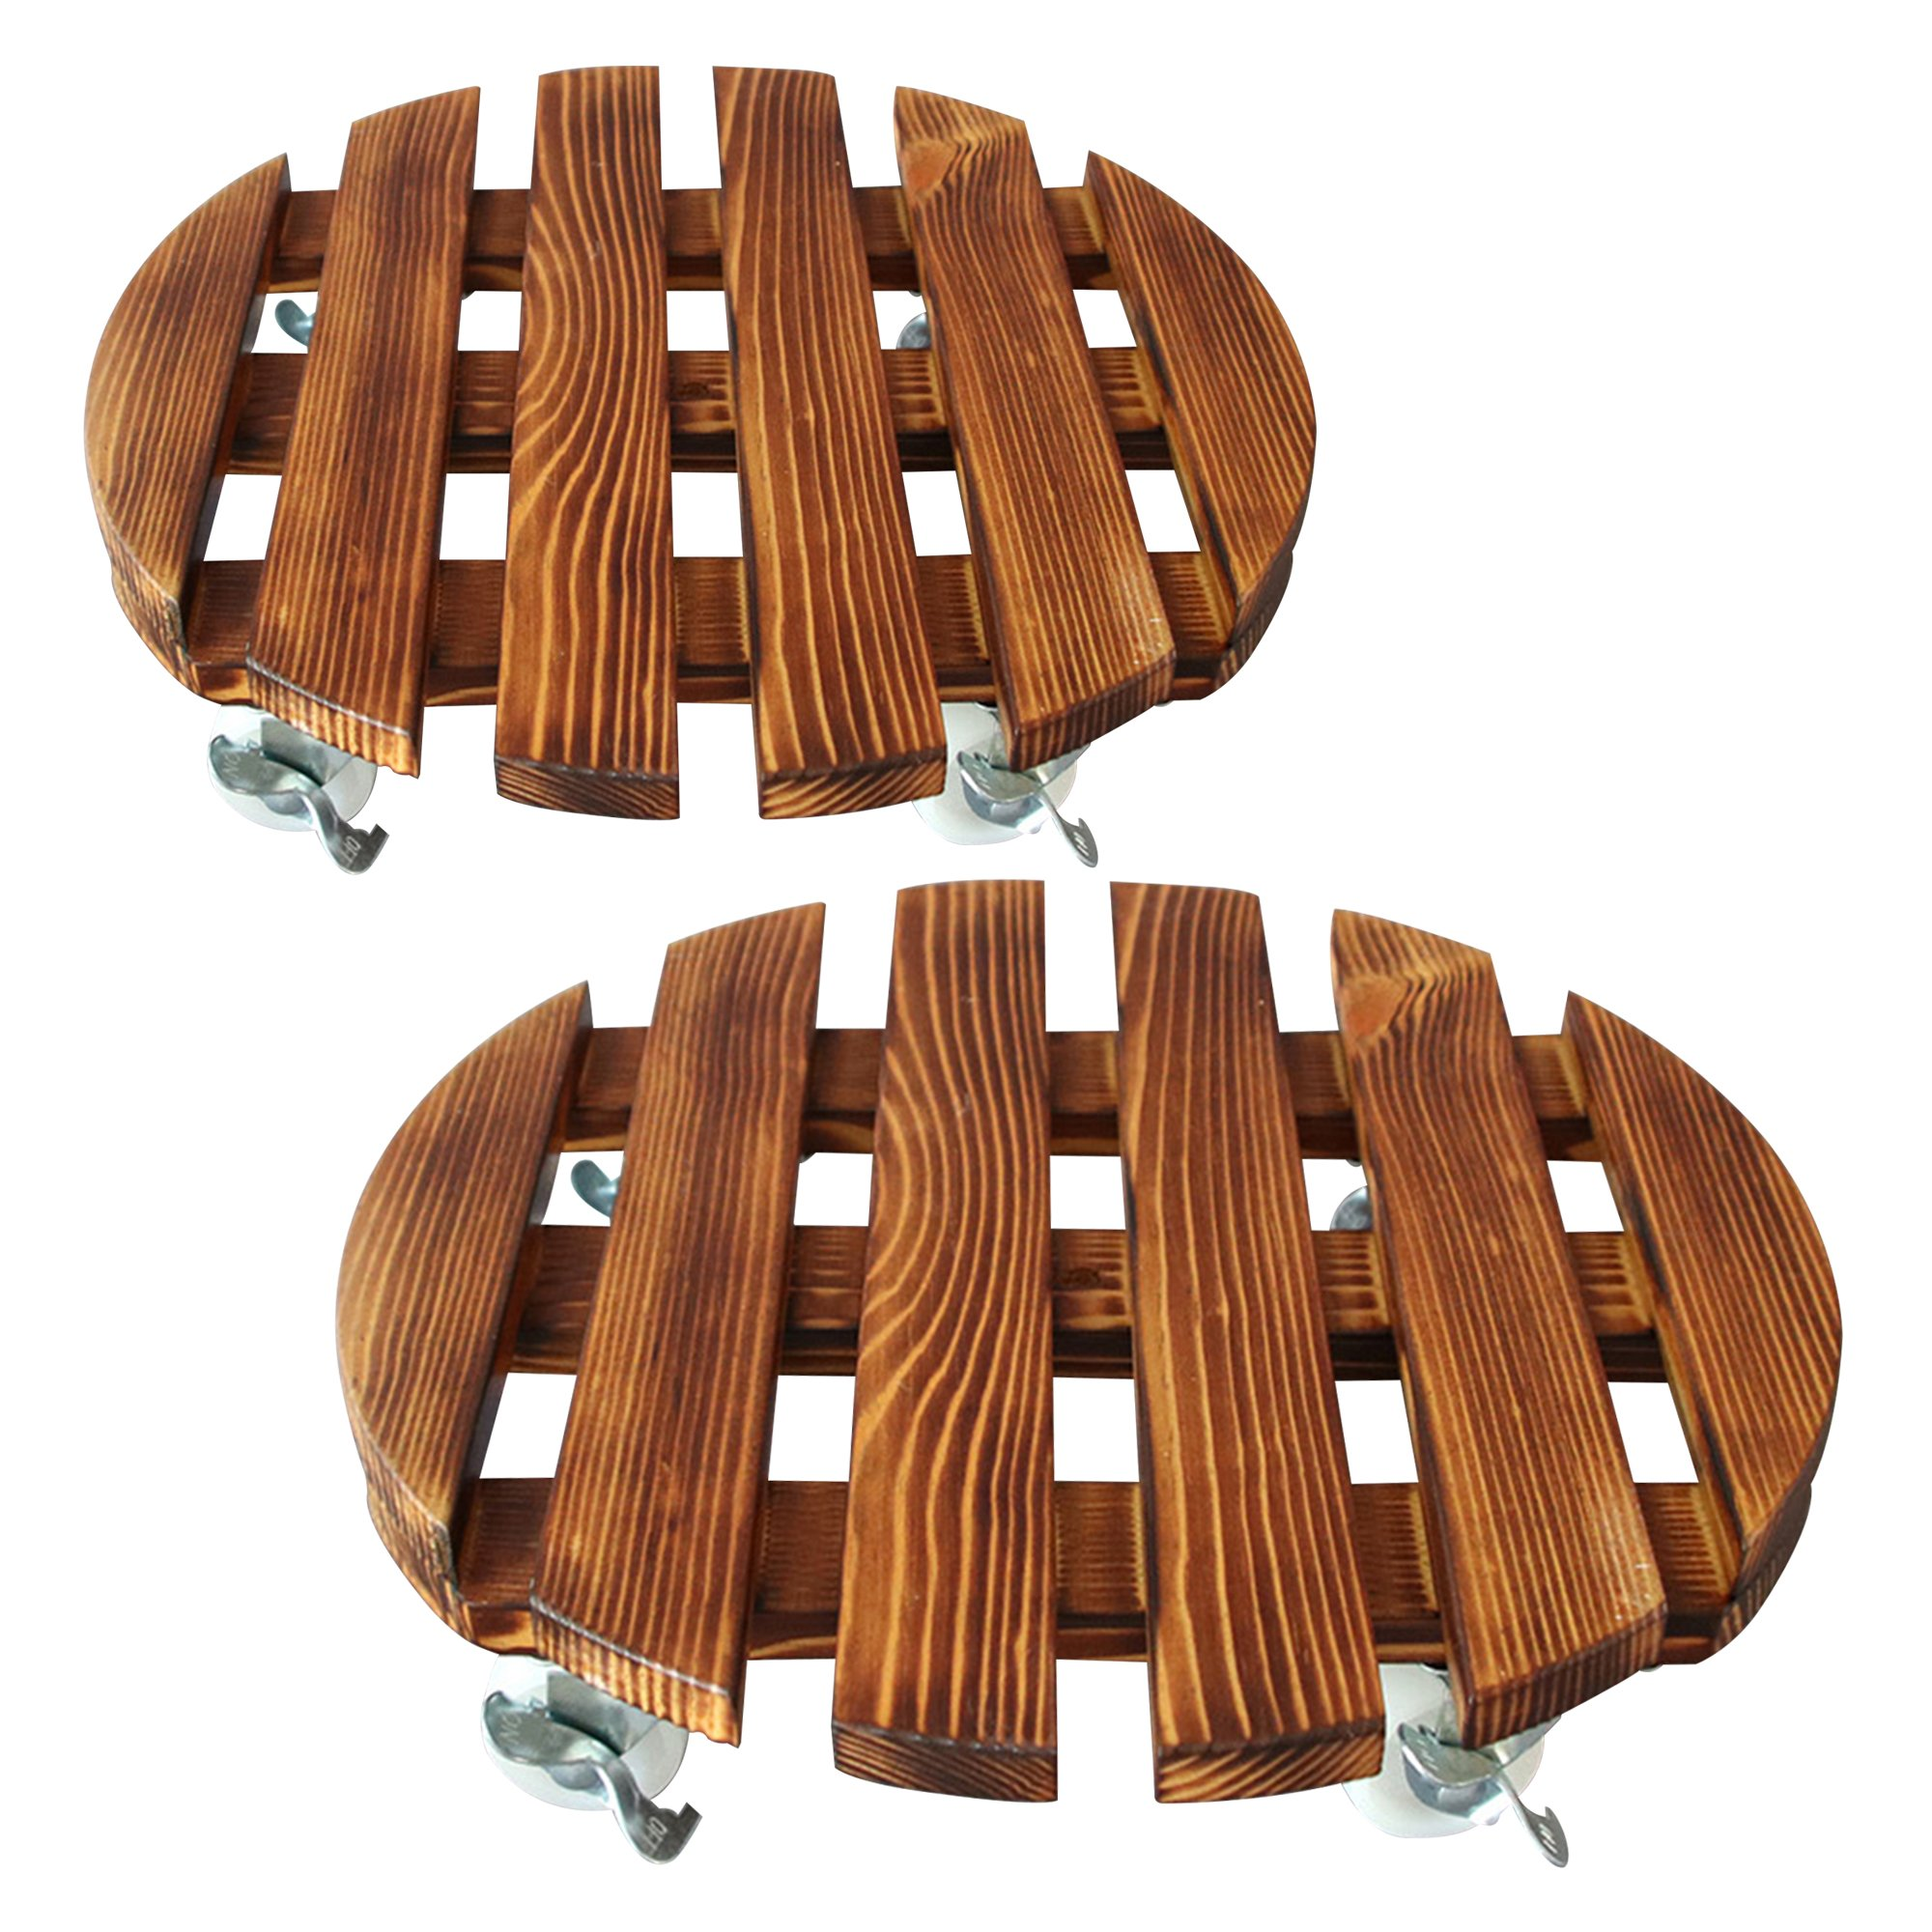 2Pcs Wooden Plant Caddy Trolley Roller